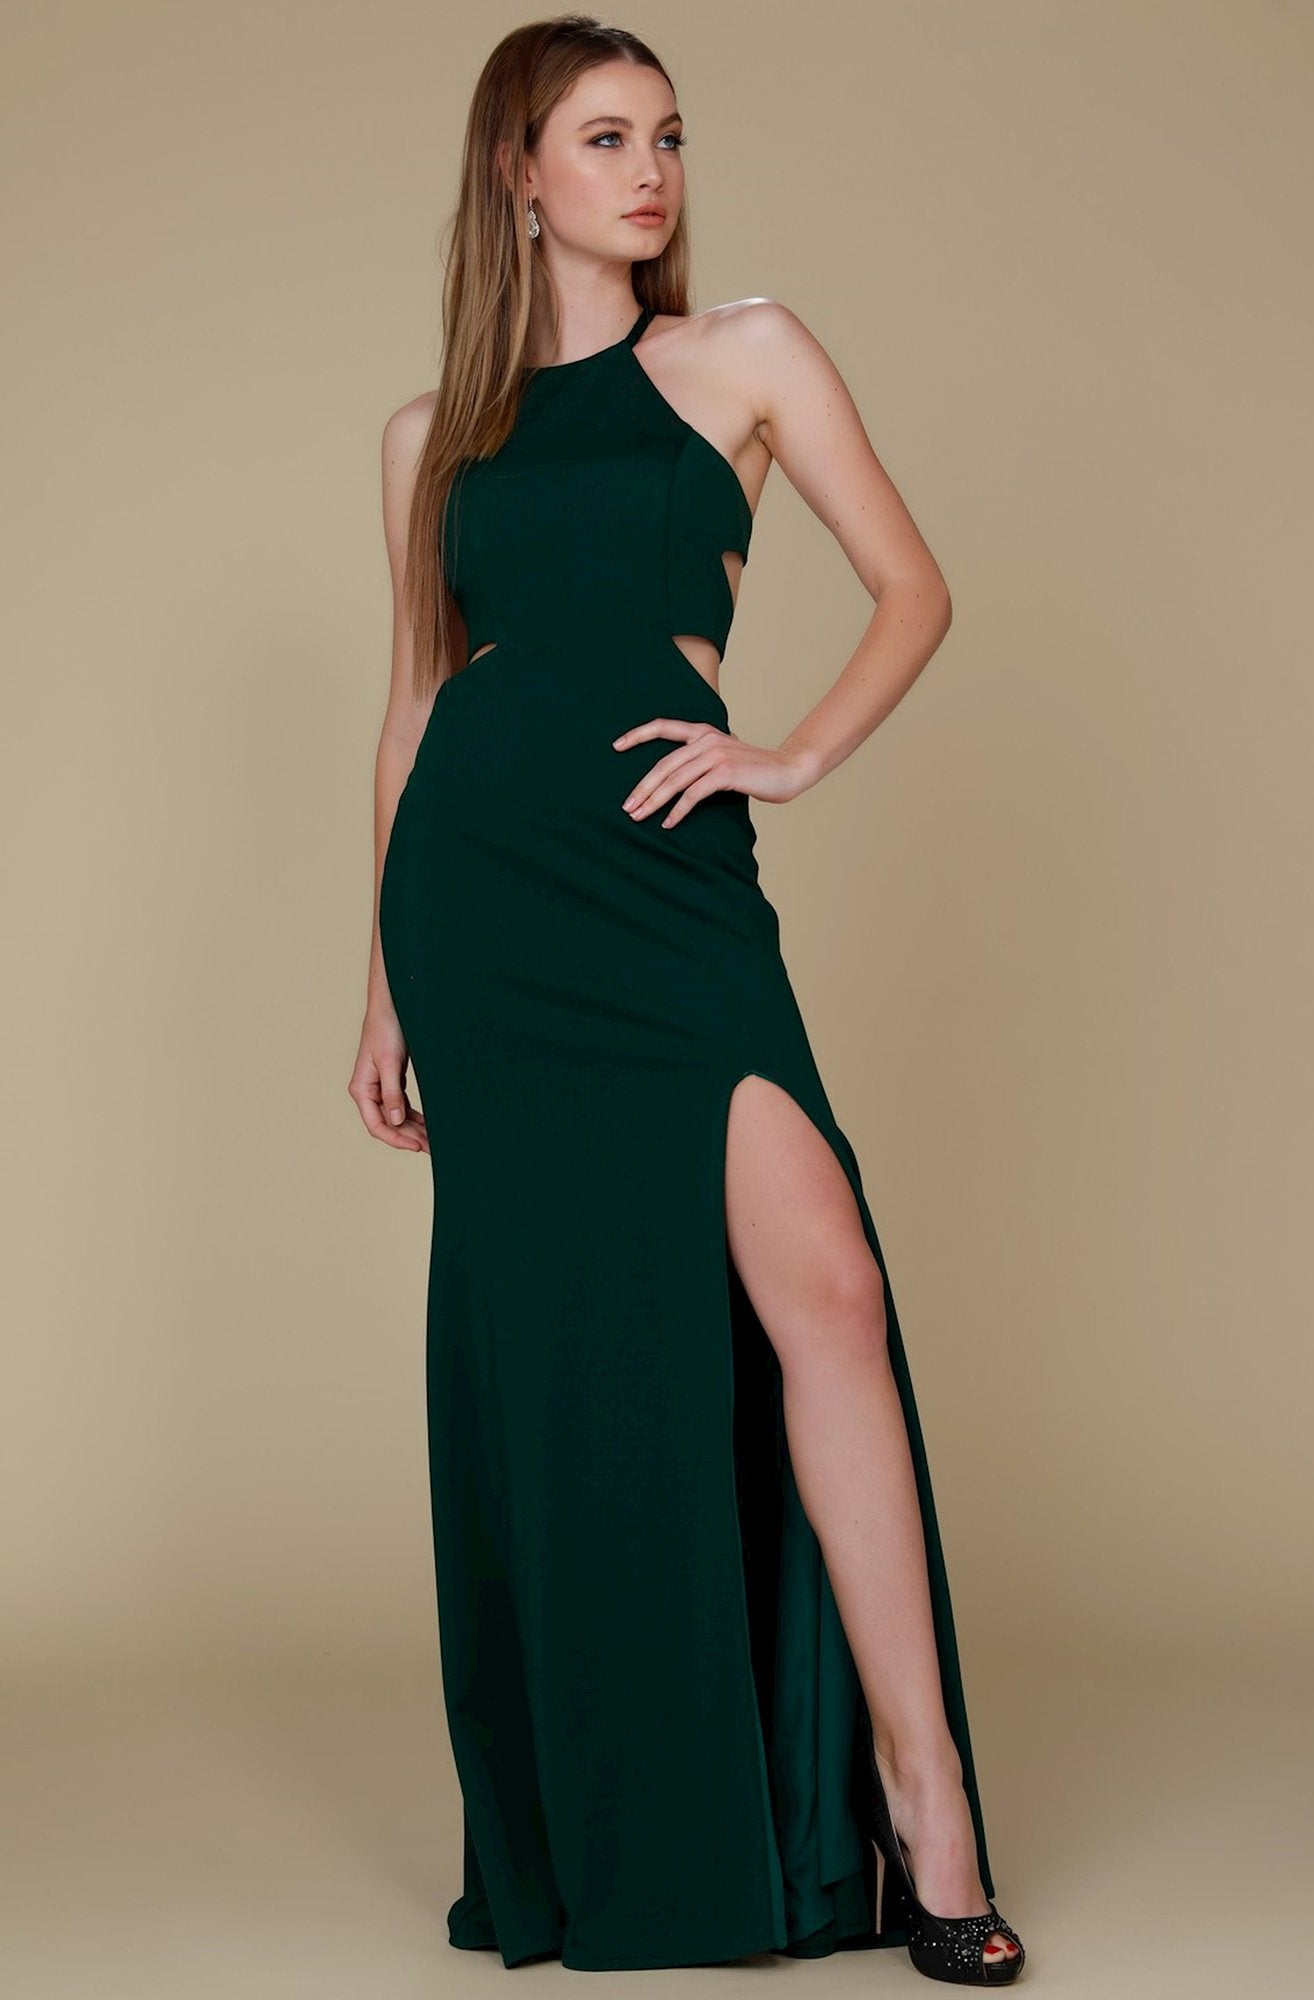 Nox Anabel - C026 Sexy Cutout Halter Neck Lace-up Back Sheath Gown In Green